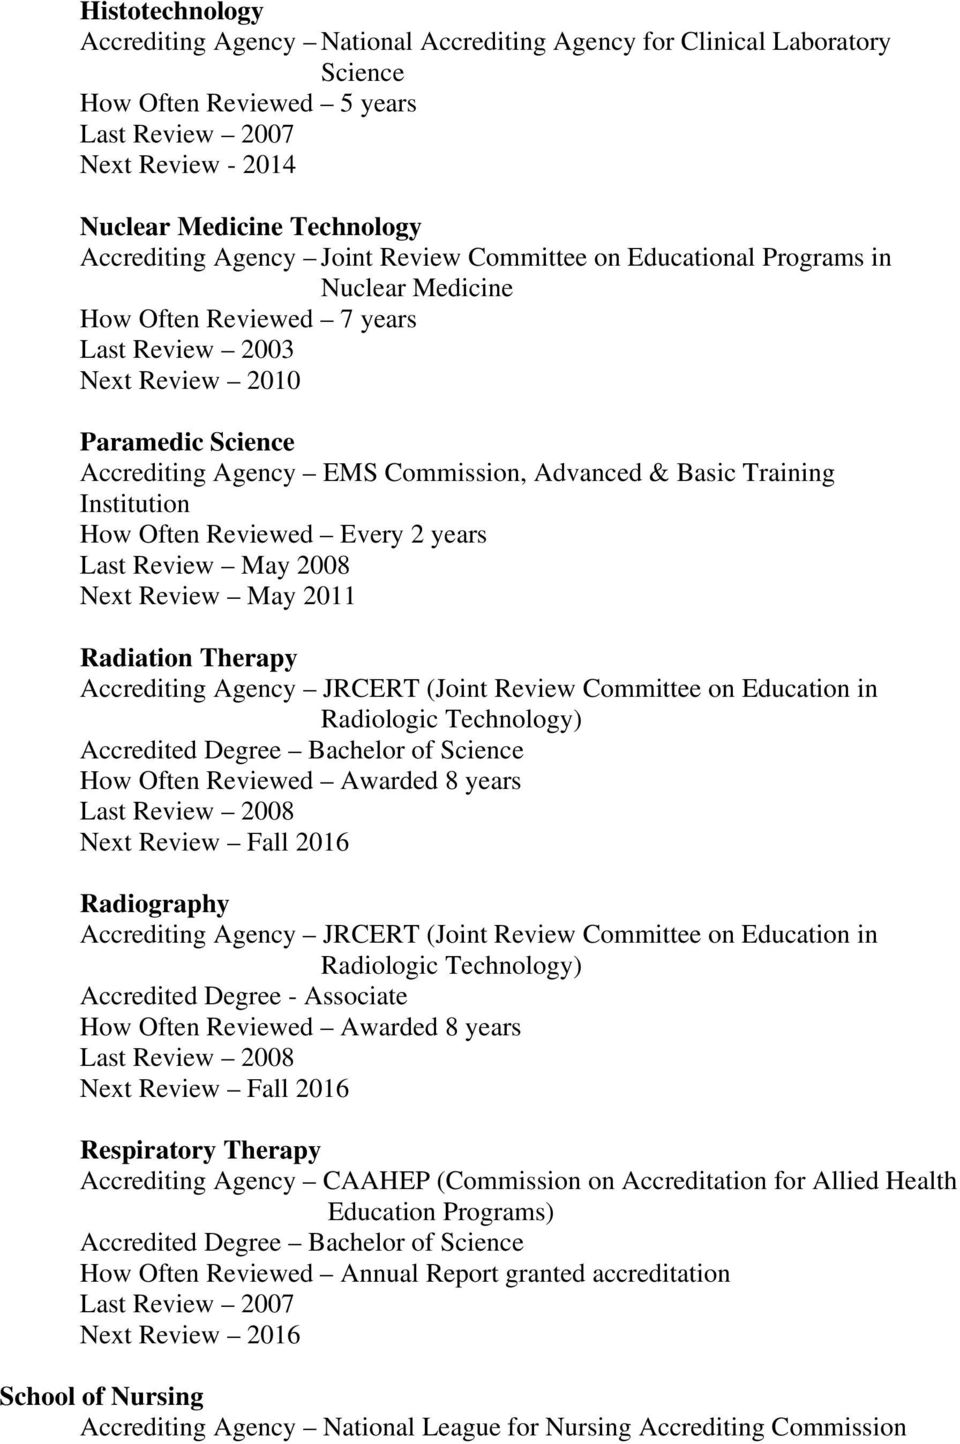 Radiation Therapy Accrediting Agency JRCERT (Joint Review Committee on Education in Radiologic Technology) How Often Reviewed Awarded 8 years Next Review Fall 2016 Radiography Accrediting Agency